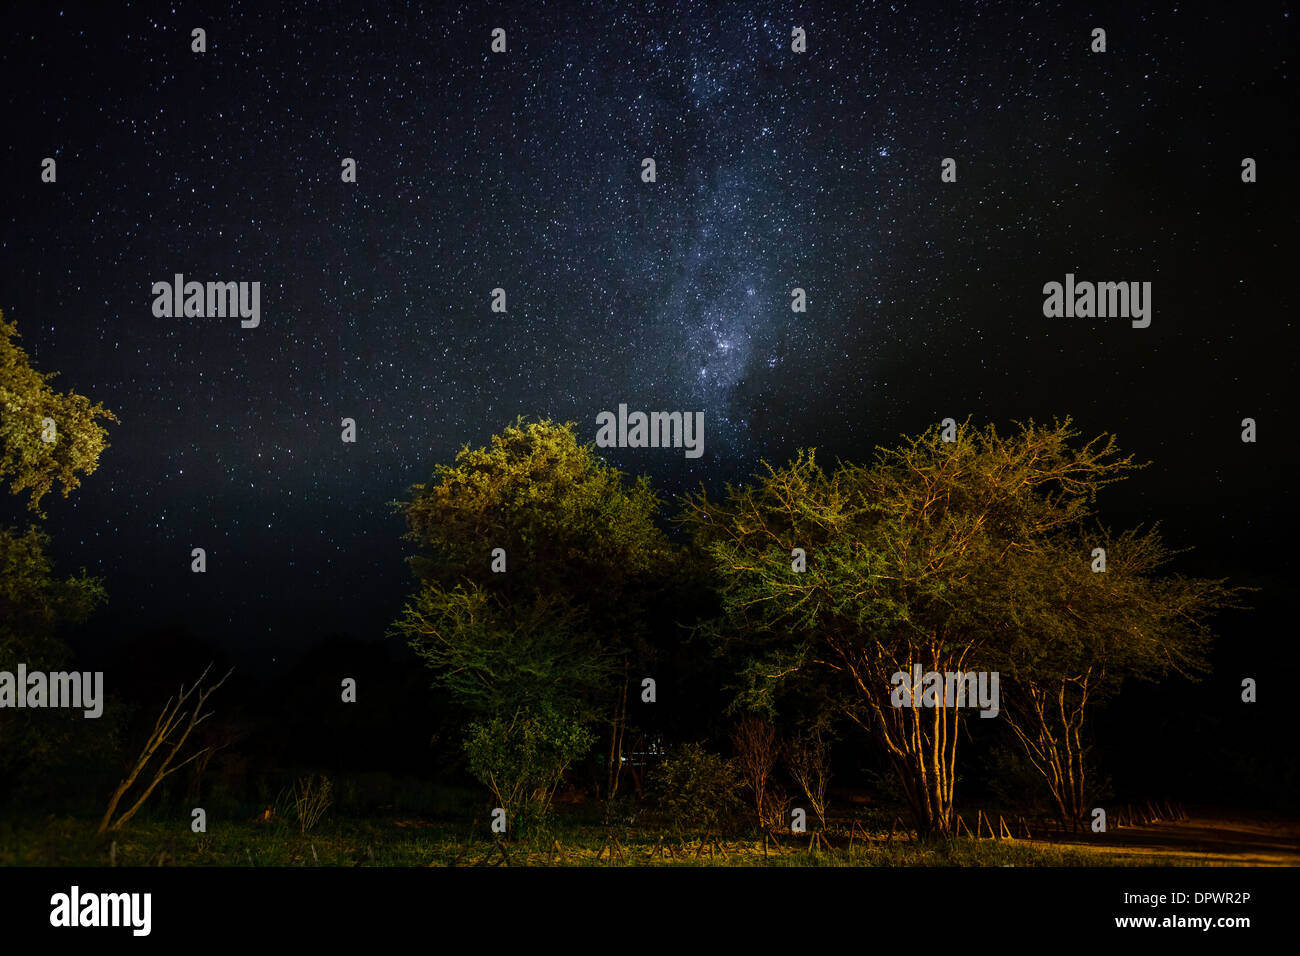 Acacia trees illuminated by the light of safari camp with a sky filled with thousands of bright stars above. - Stock Image